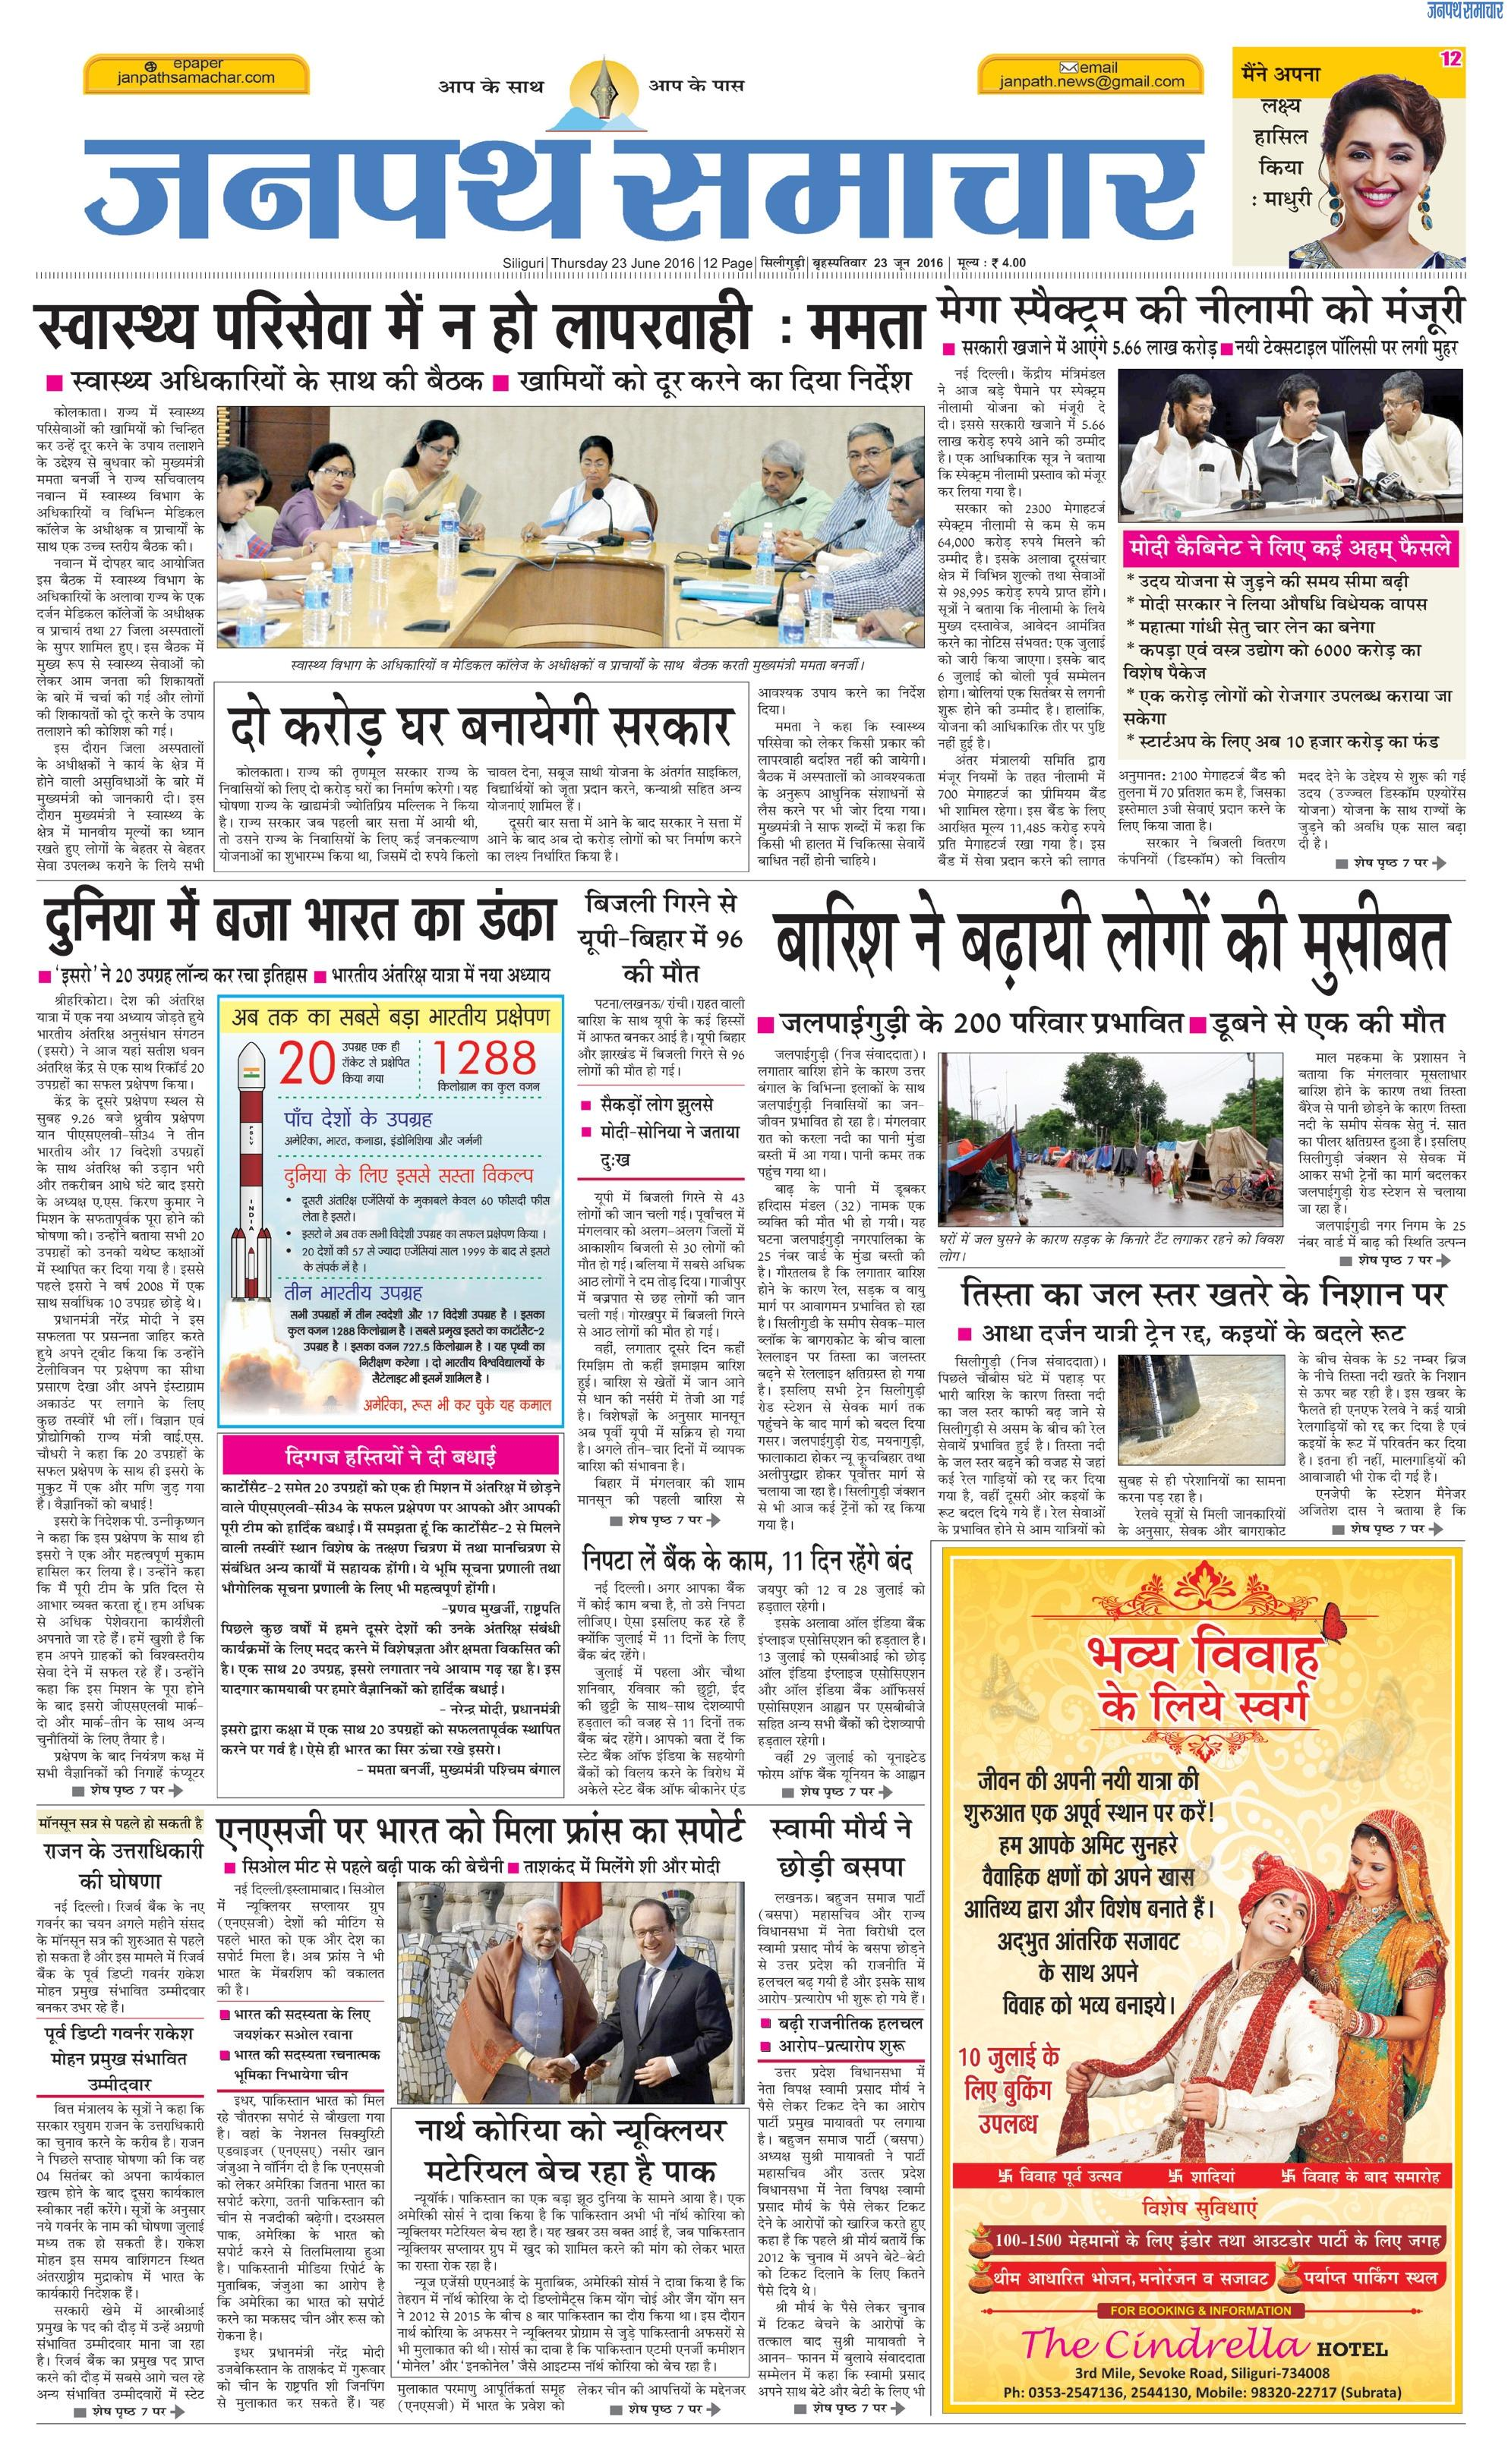 Janpath Samachar Newspaper Advertising